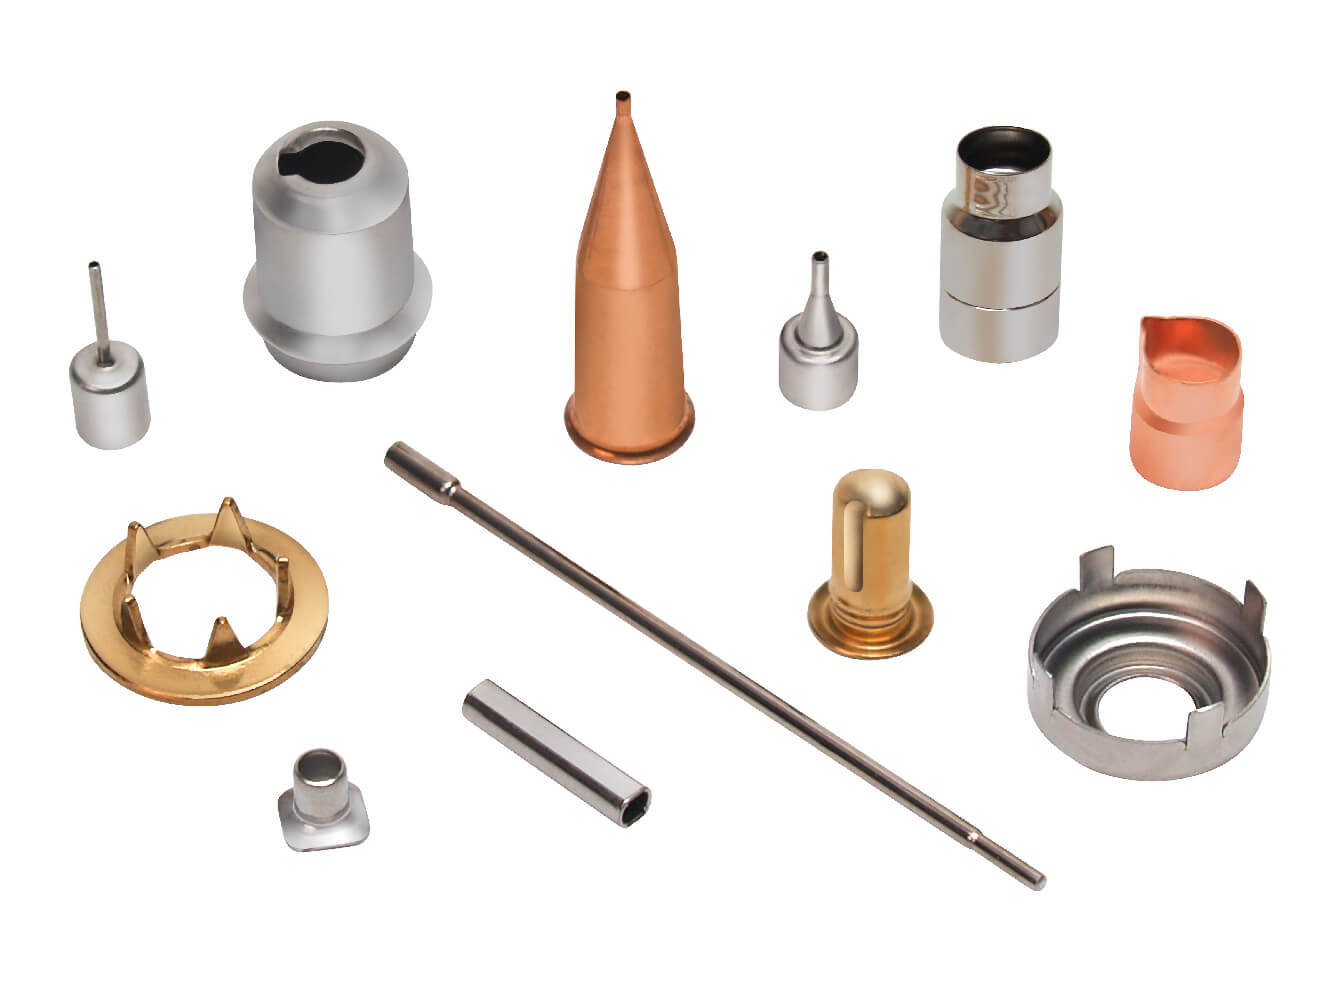 Image of parts we manufacture